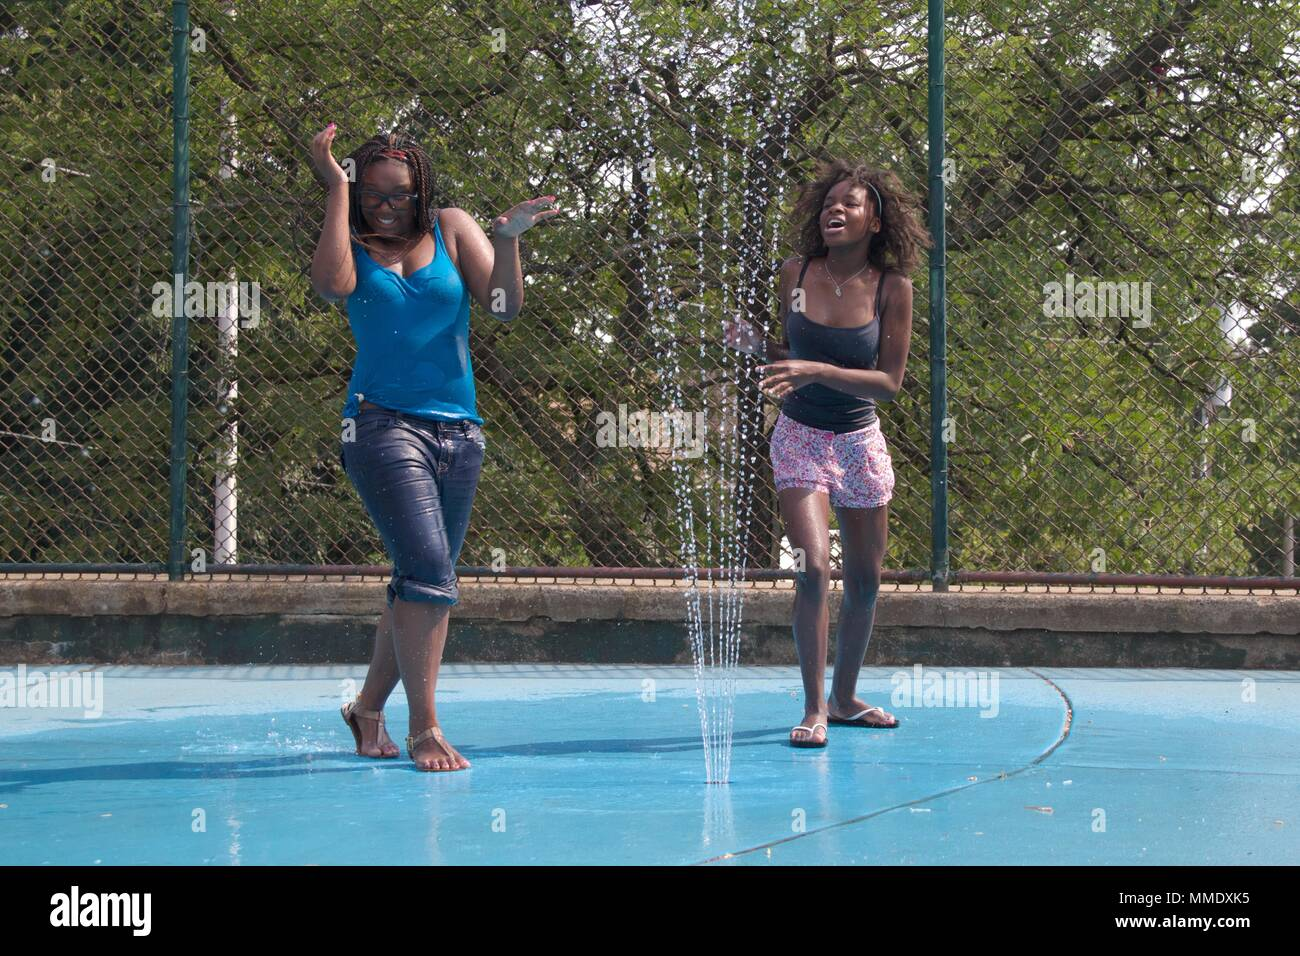 July 7, 2012 - Philadelphia, PA, USA:  Two young black women cool off in one of the city's public spray grounds on a hot summer day. - Stock Image